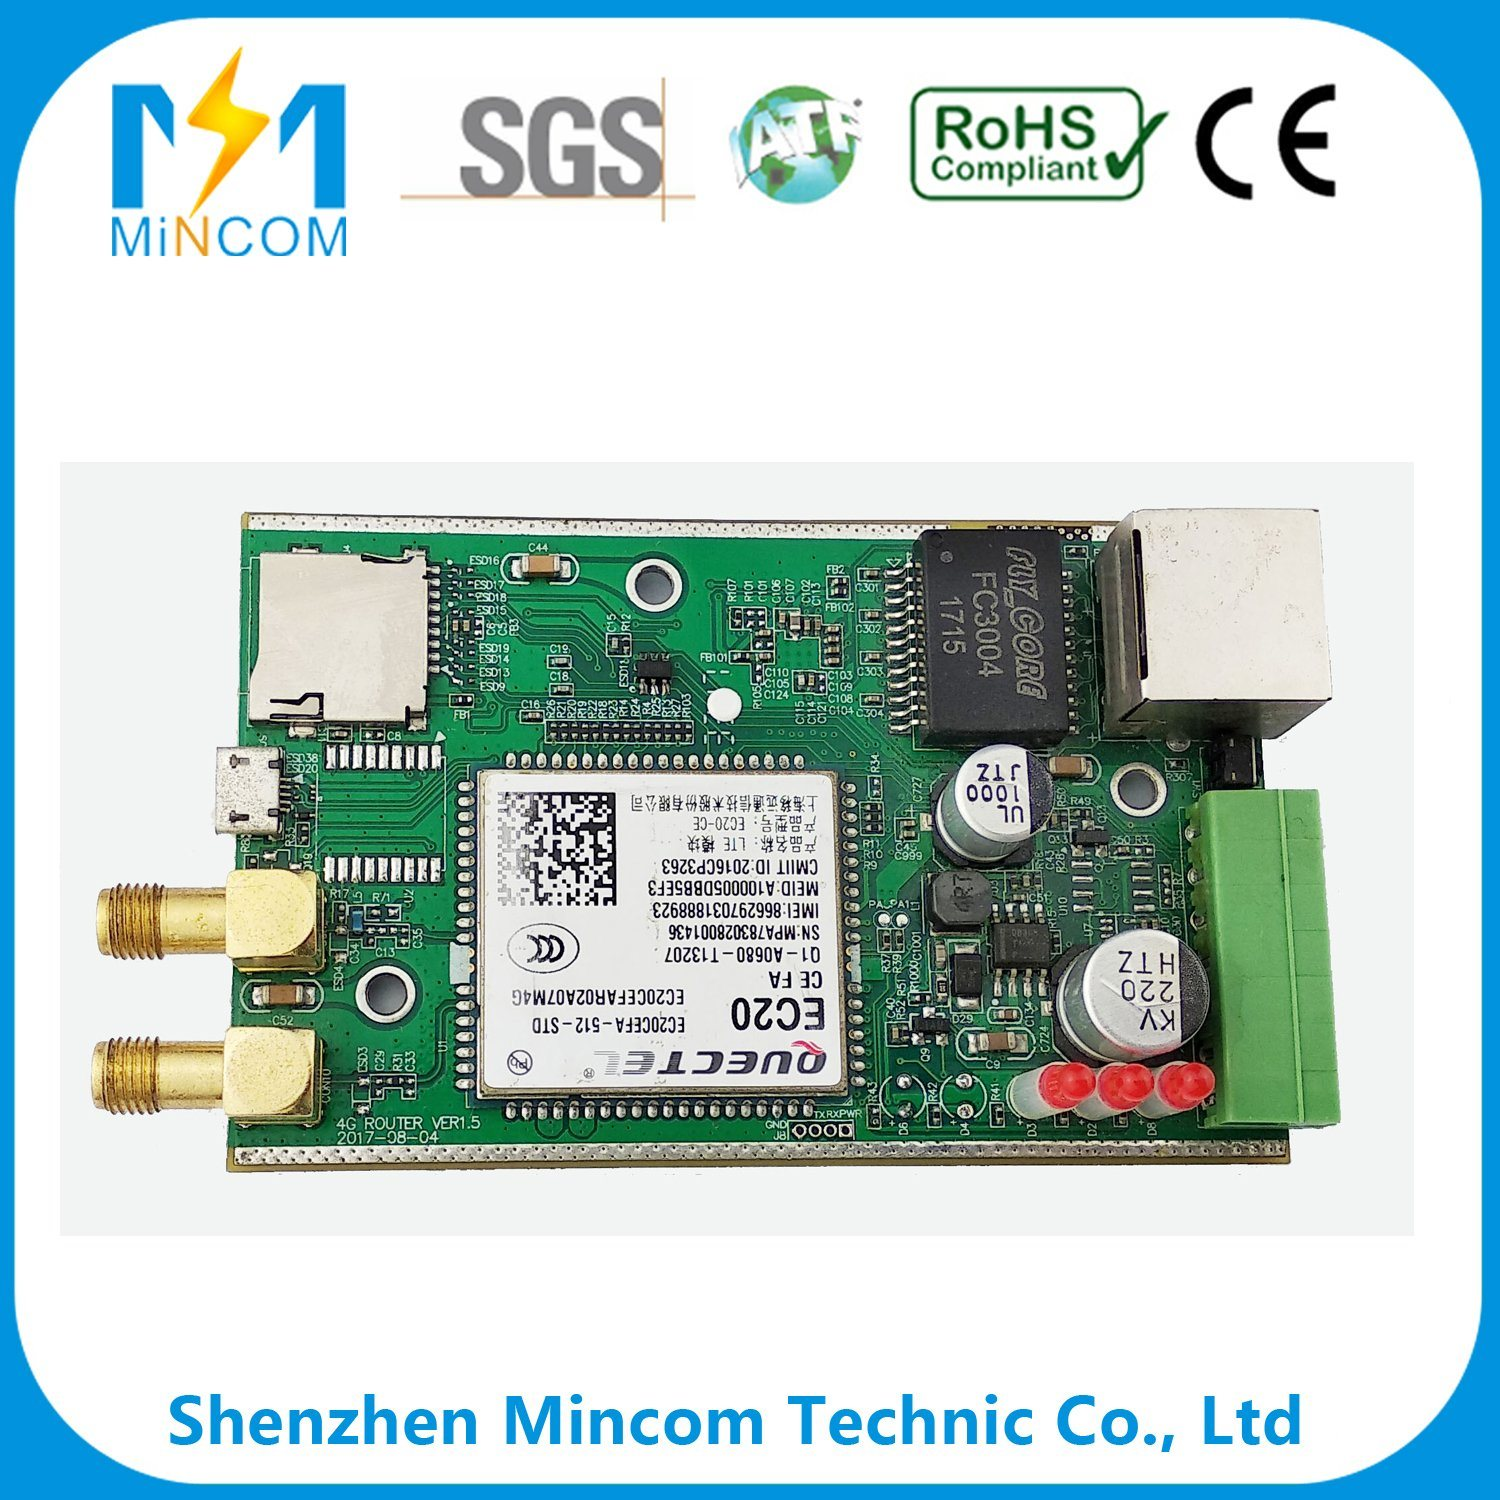 Wholesale Printed Circuit Pcb Buy Reliable Boardrf4 Oem Multiplayer Board Customized High Quality Industrial Controlling